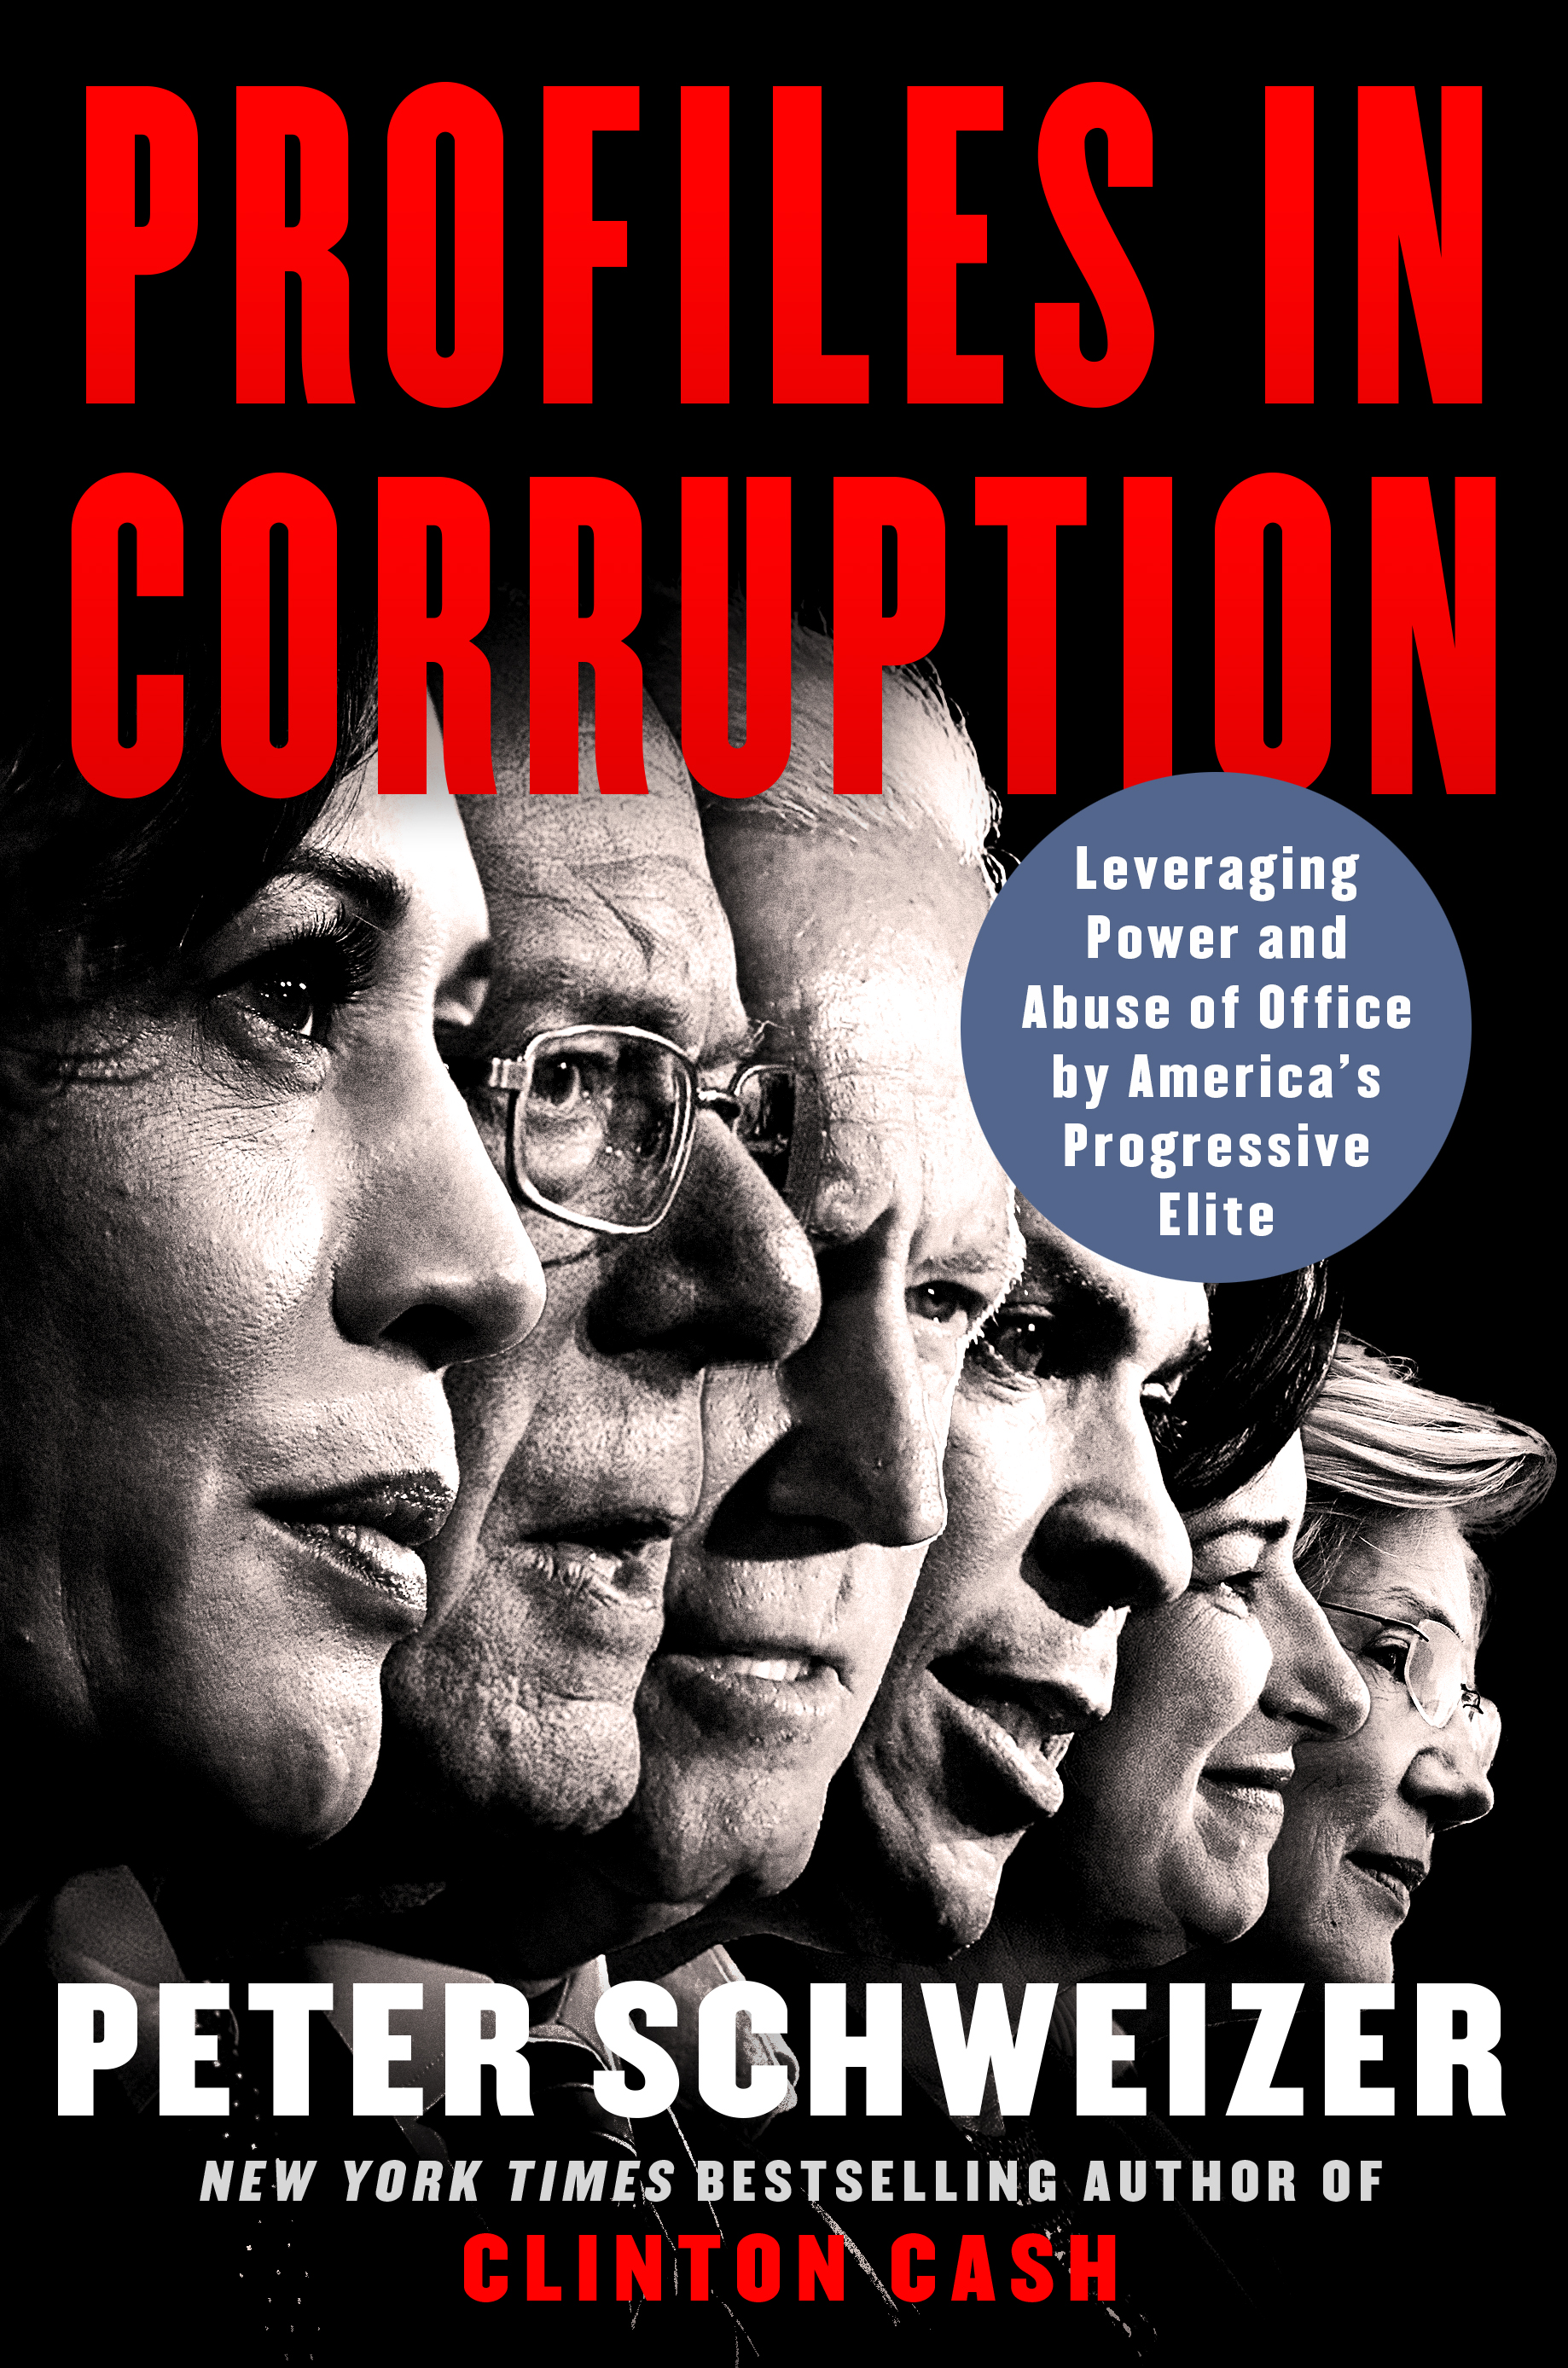 Profiles in Corruption